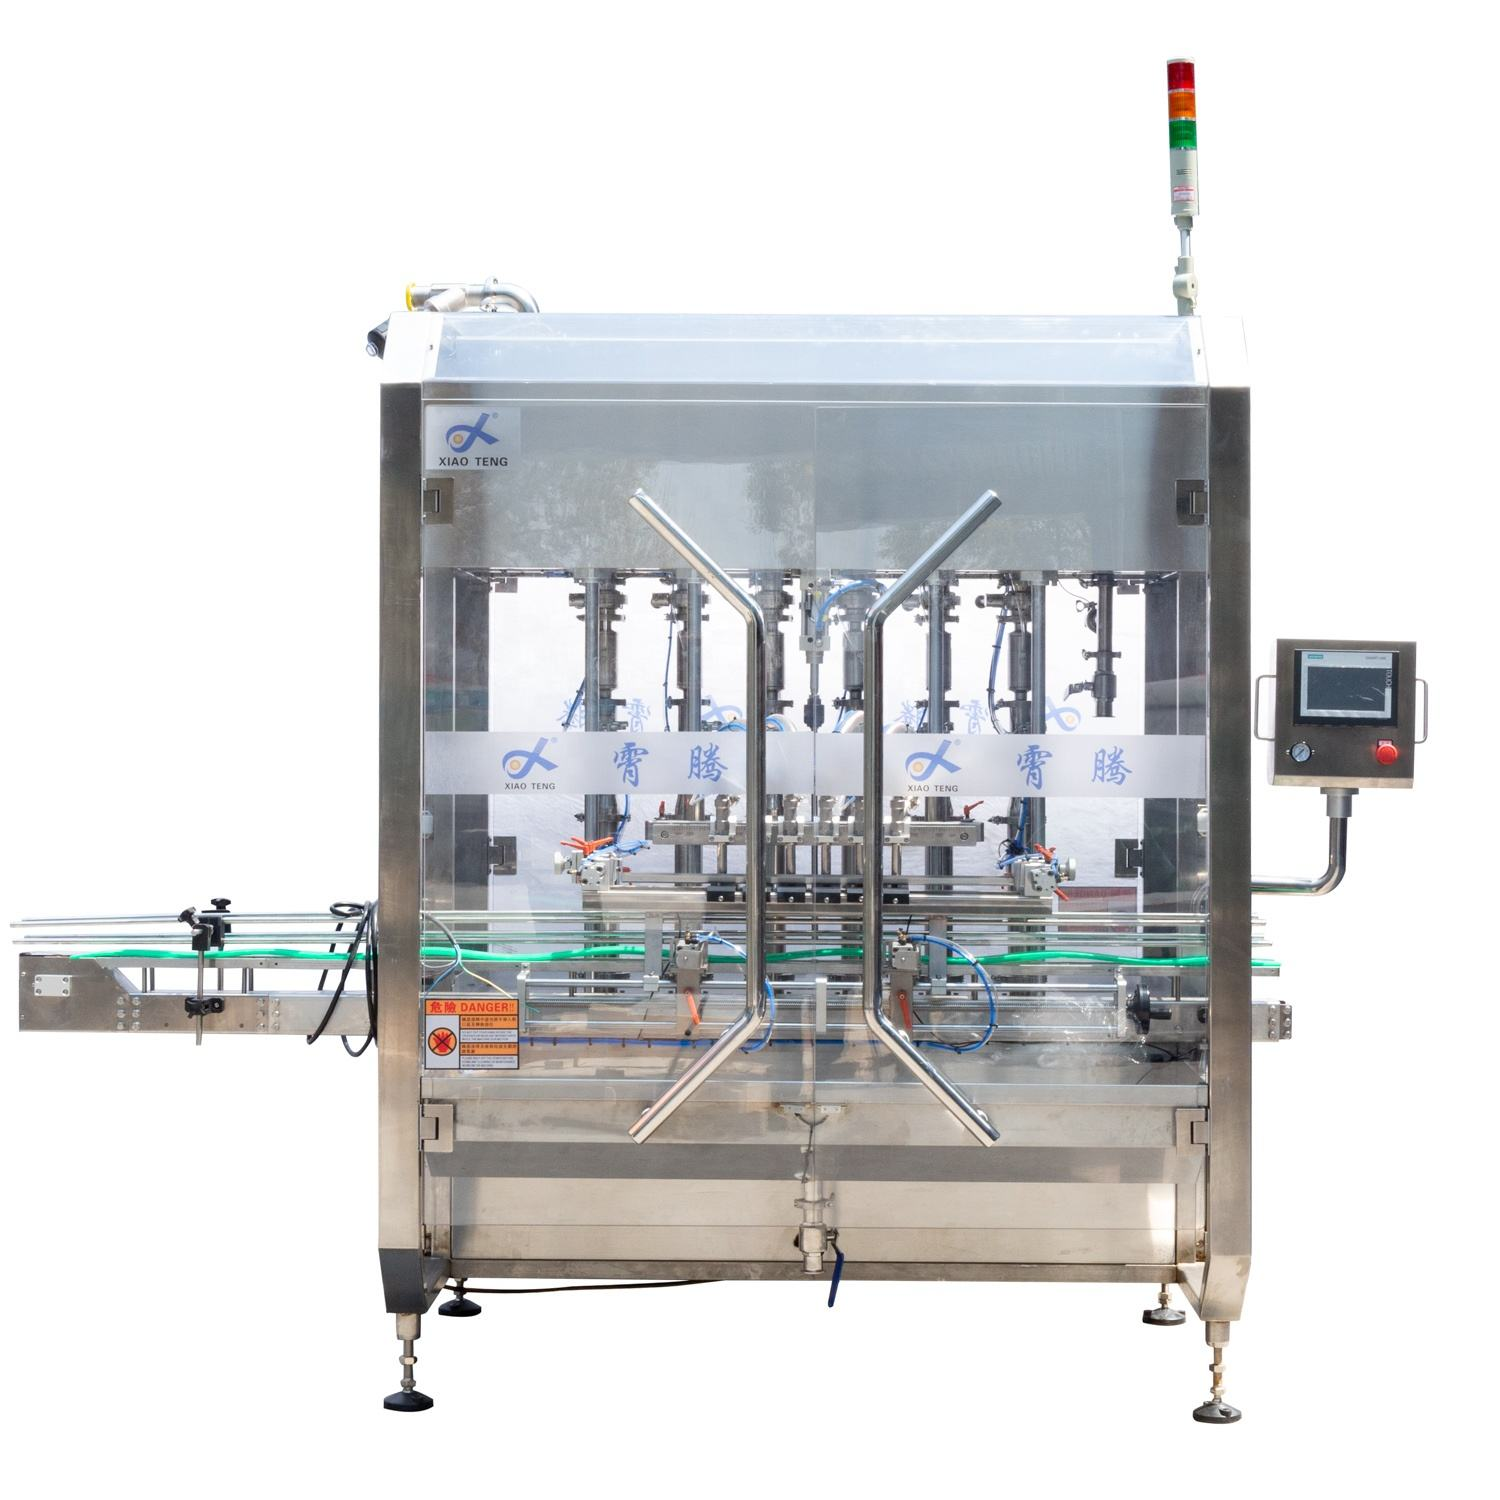 Most popular products Automatic liquid filling machine, machines equipment